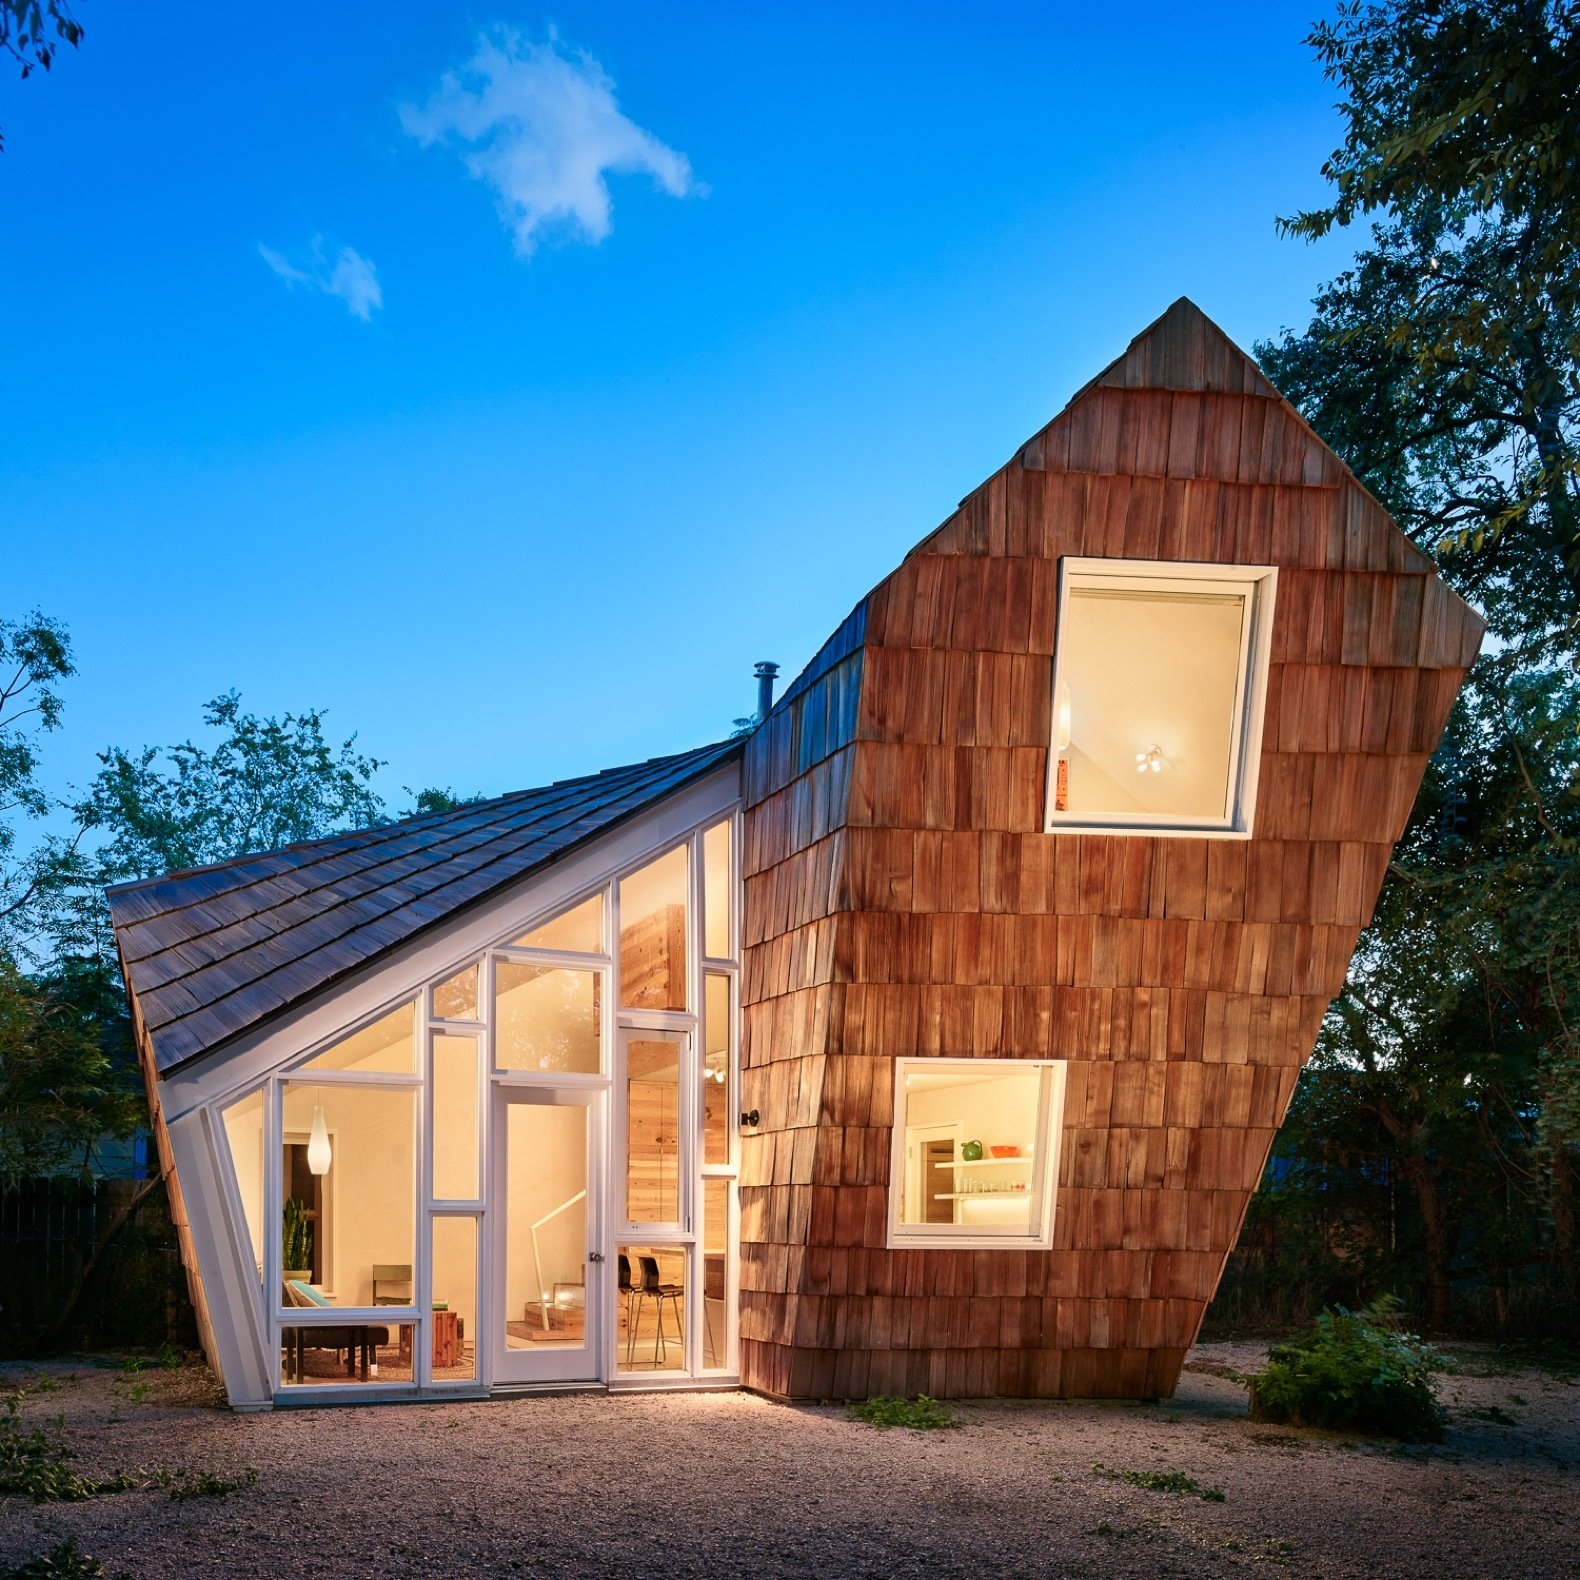 Exterior, Shingles, Wood, House, Gable, Small Home, and Shed The Hive was completed in May 2015 for a total construction cost of $160,000.  Best Exterior Small Home Gable House Photos from A Whimsical Guest House Leans Out to Maximize Space